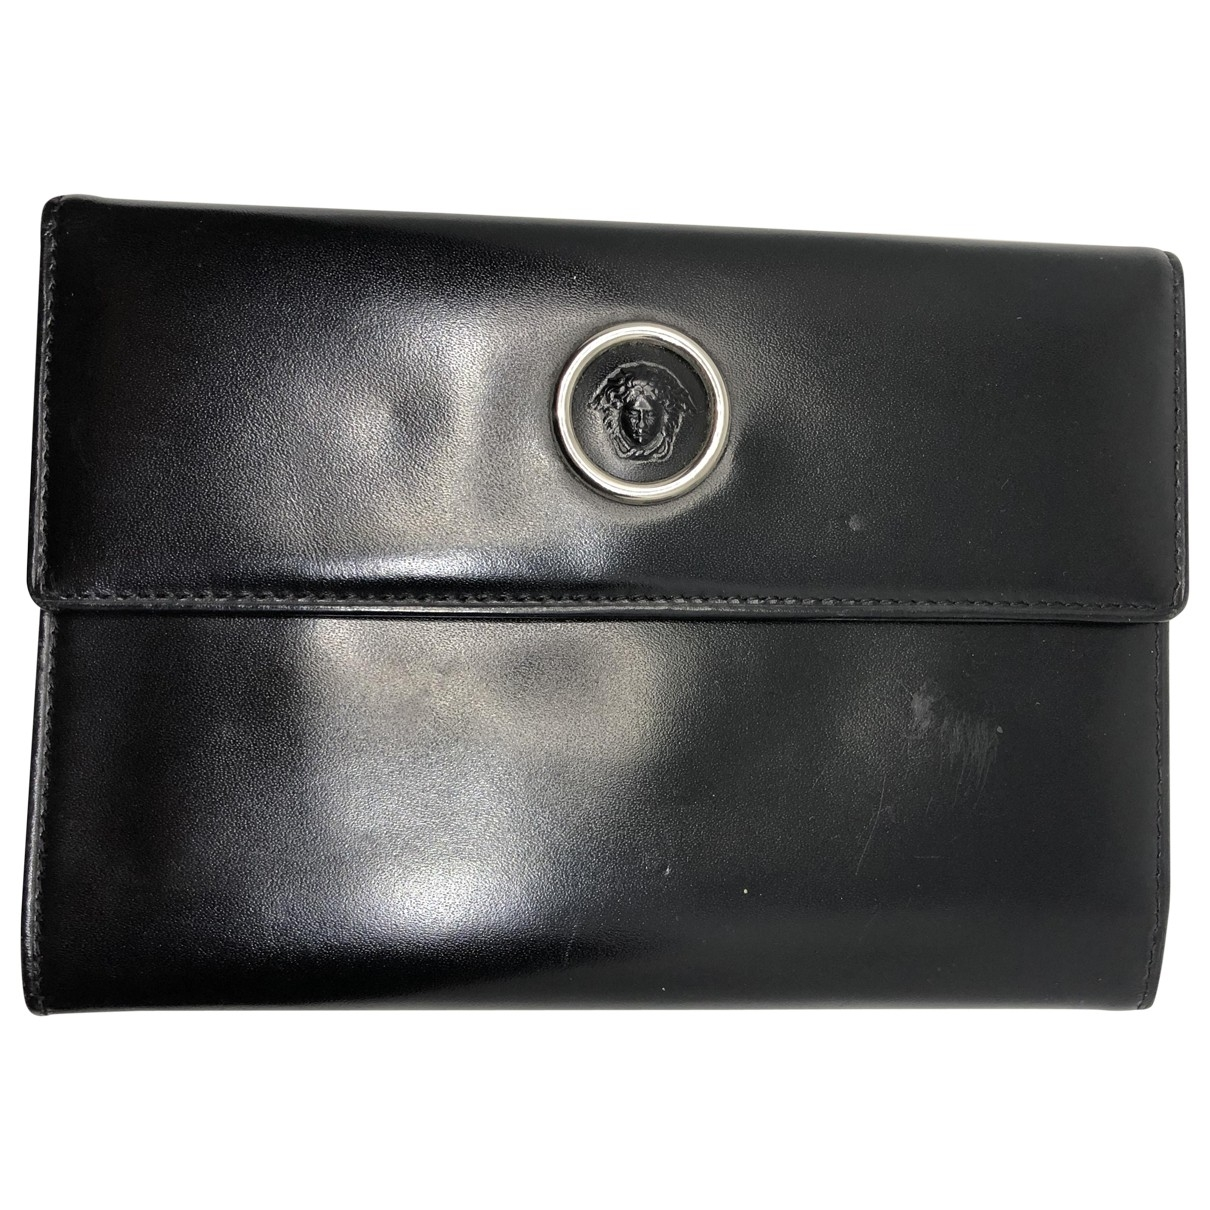 Gianni Versace \N Black Leather wallet for Women \N